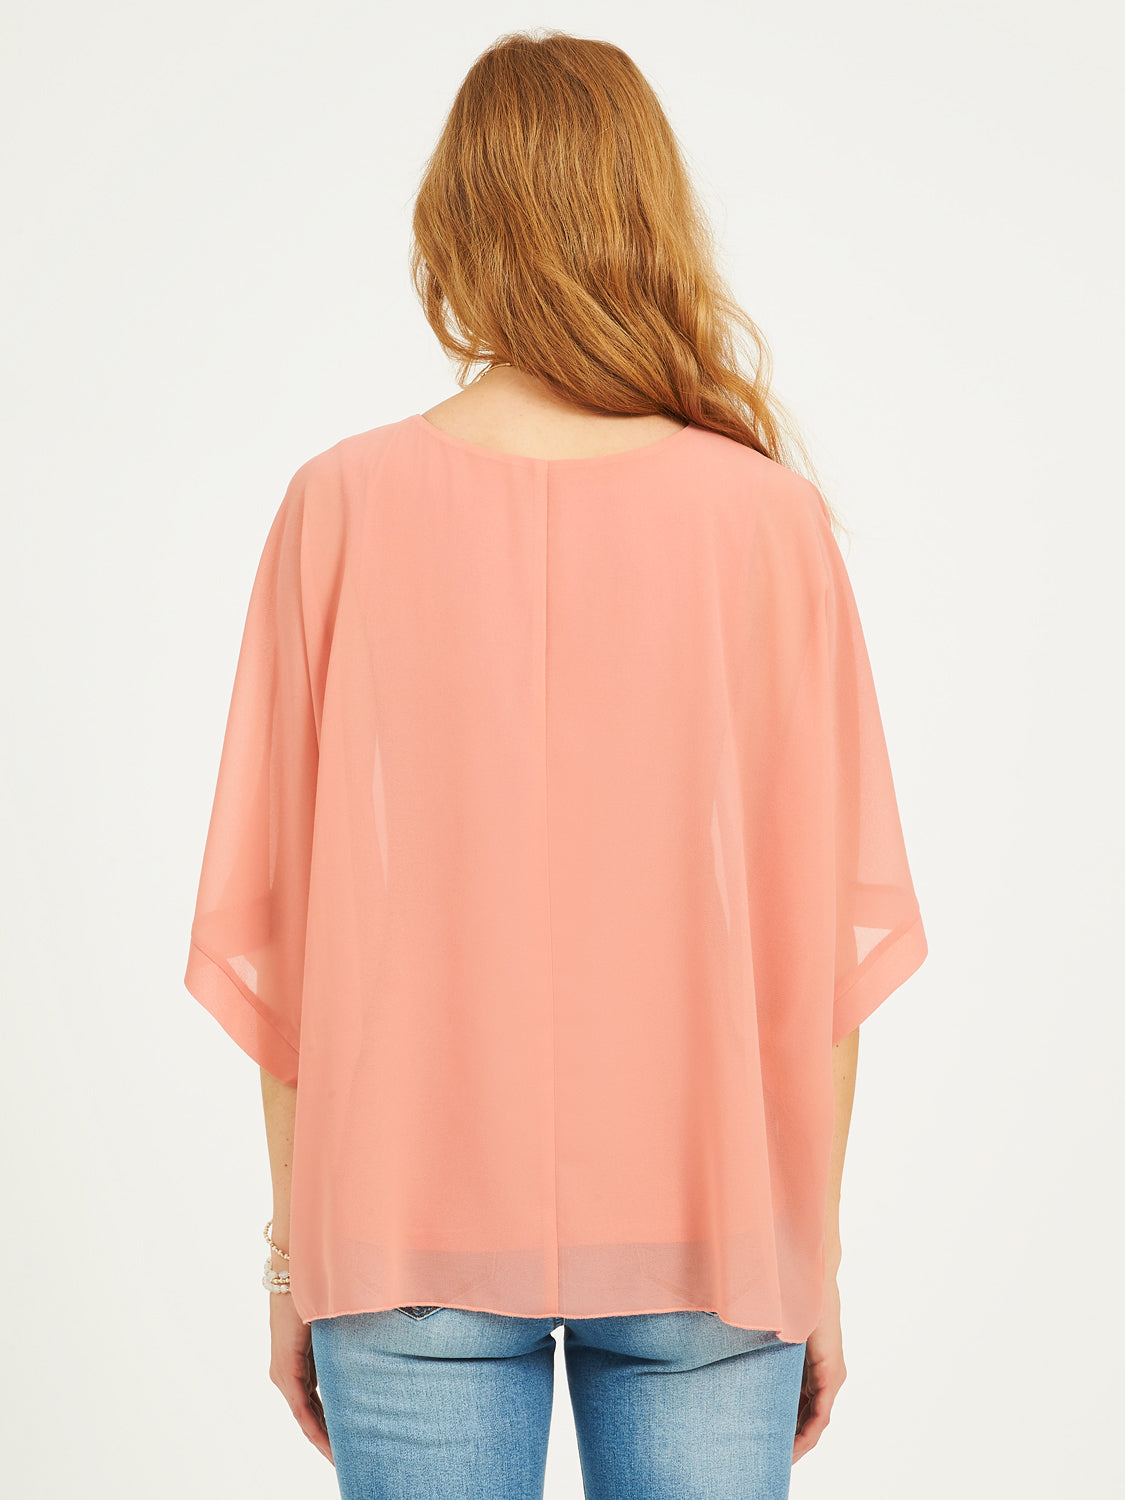 Cape Sleeves And Knit Blouse